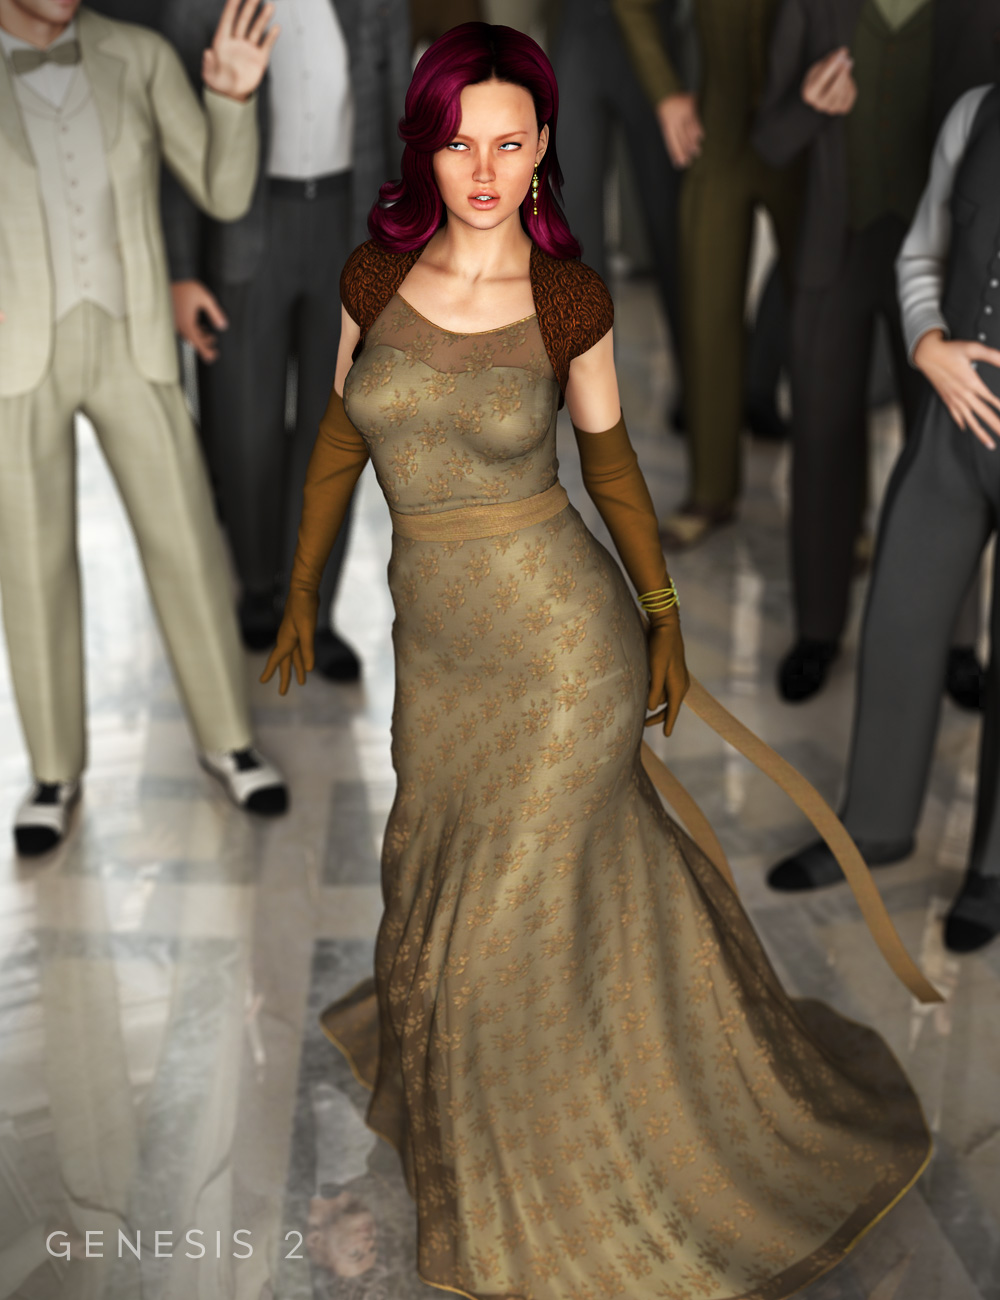 Evening Gown for Genesis 2 Female(s) by: Ravenhair, 3D Models by Daz 3D